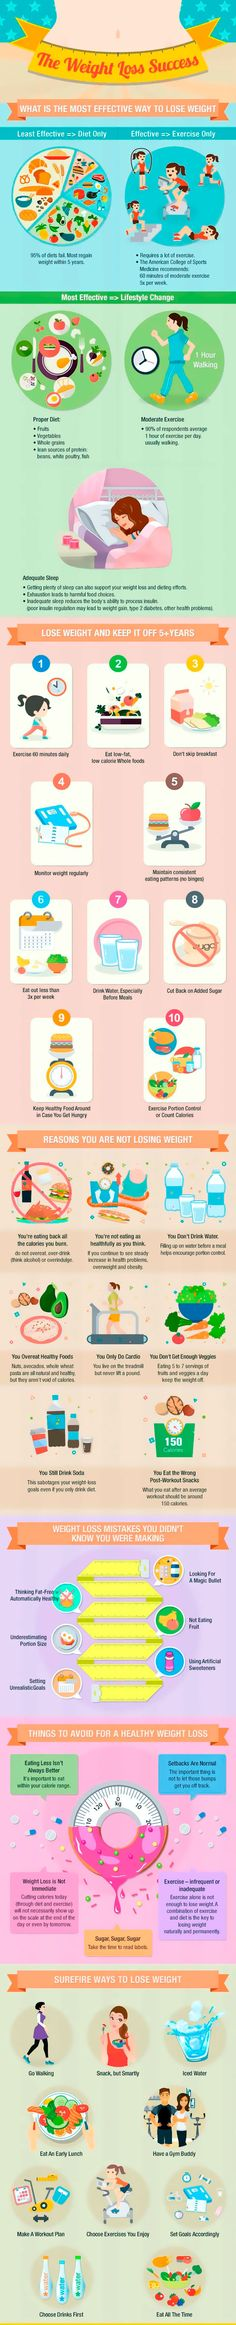 The most effective ways to help you lose weight